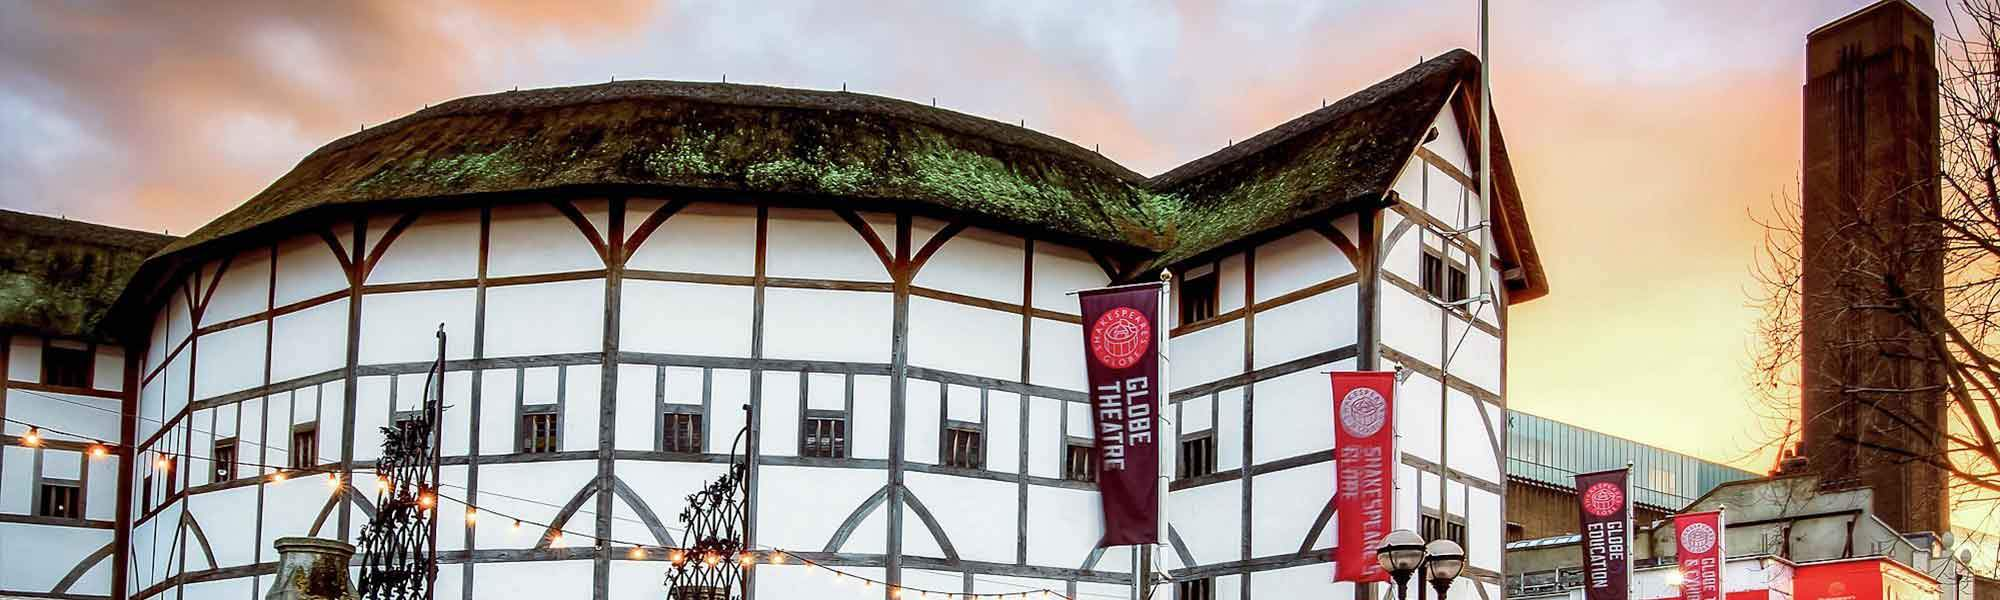 Tickets & Events Shakespeare's Globe Exhibition - A Fascinating Day Out in an Extraordinary Place, Up to 41% off